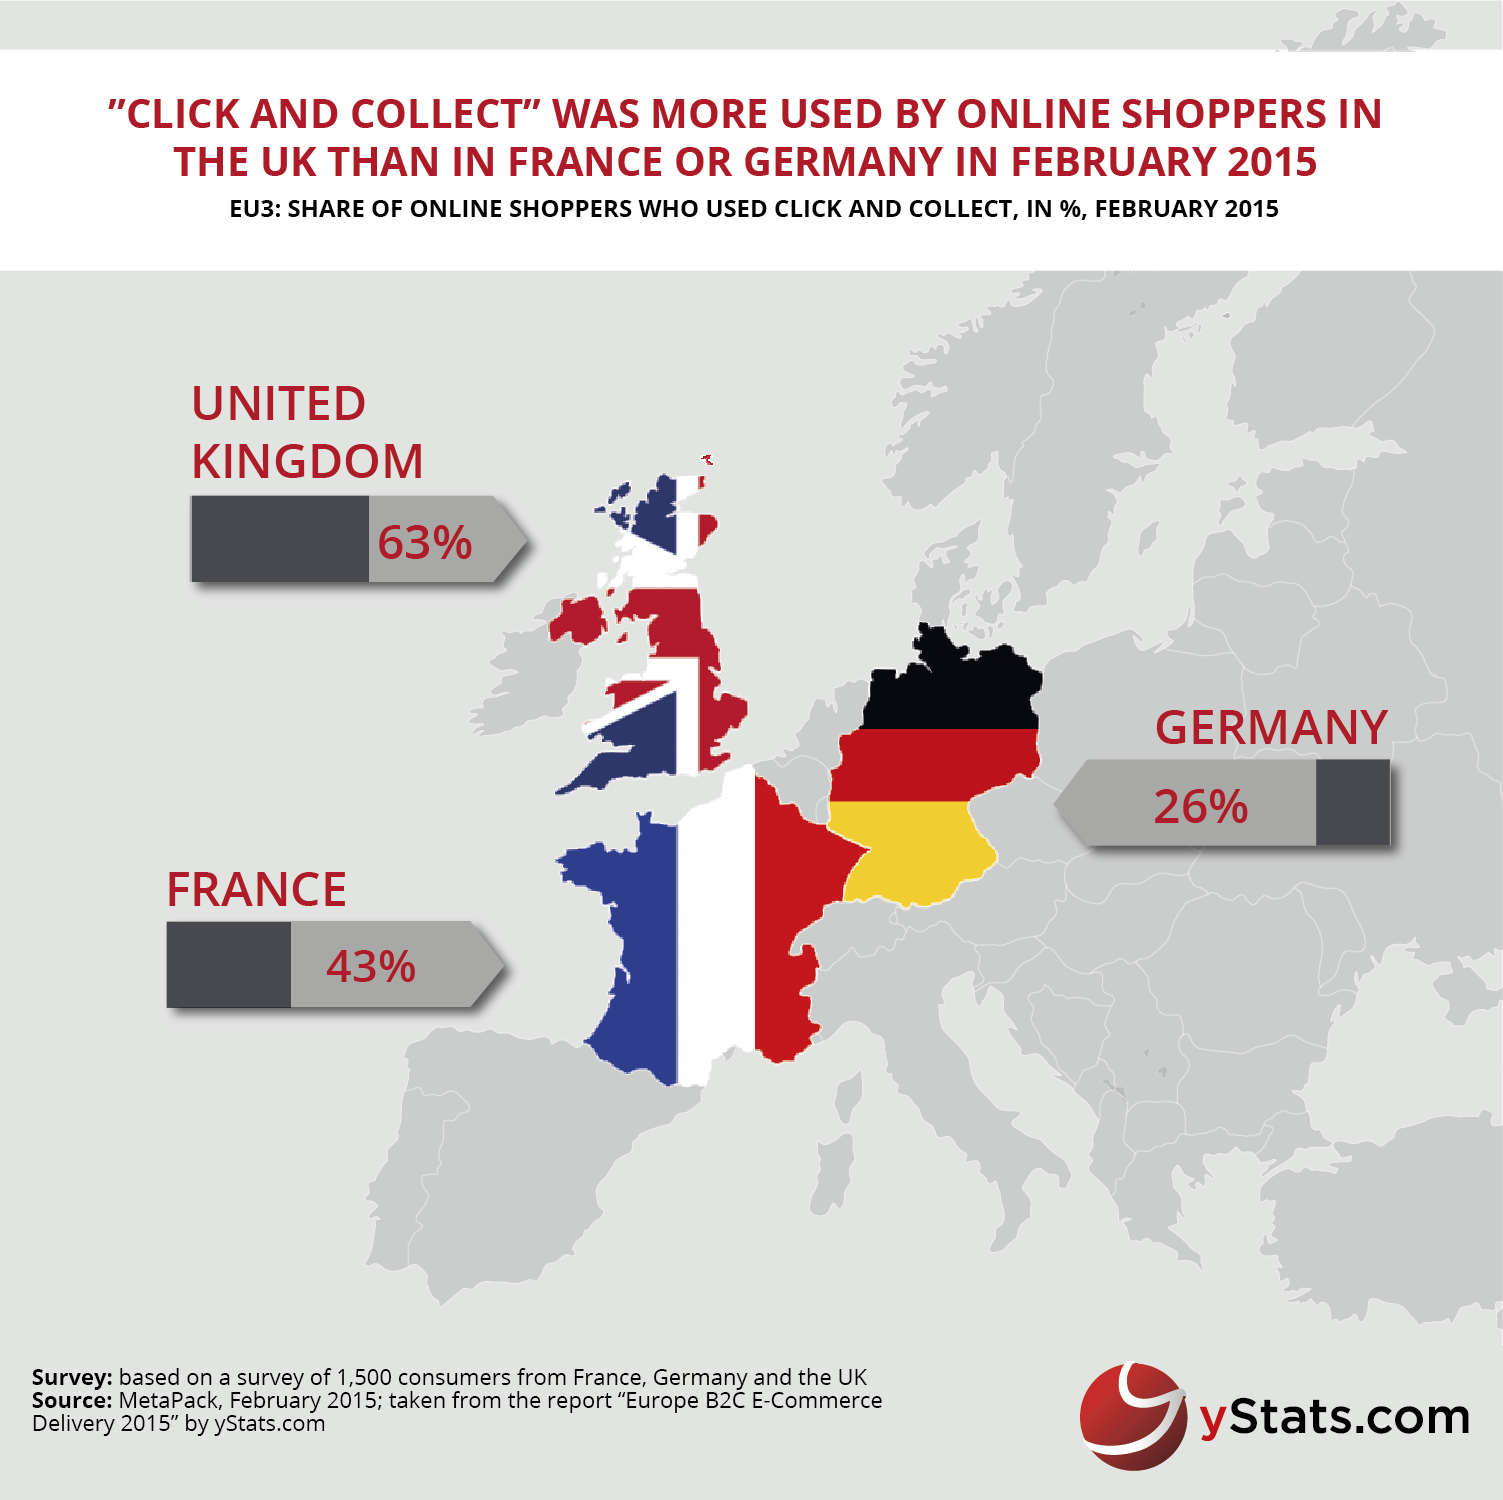 Infographic_Europe B2C E-Commerce Delivery 2015_yStats.com